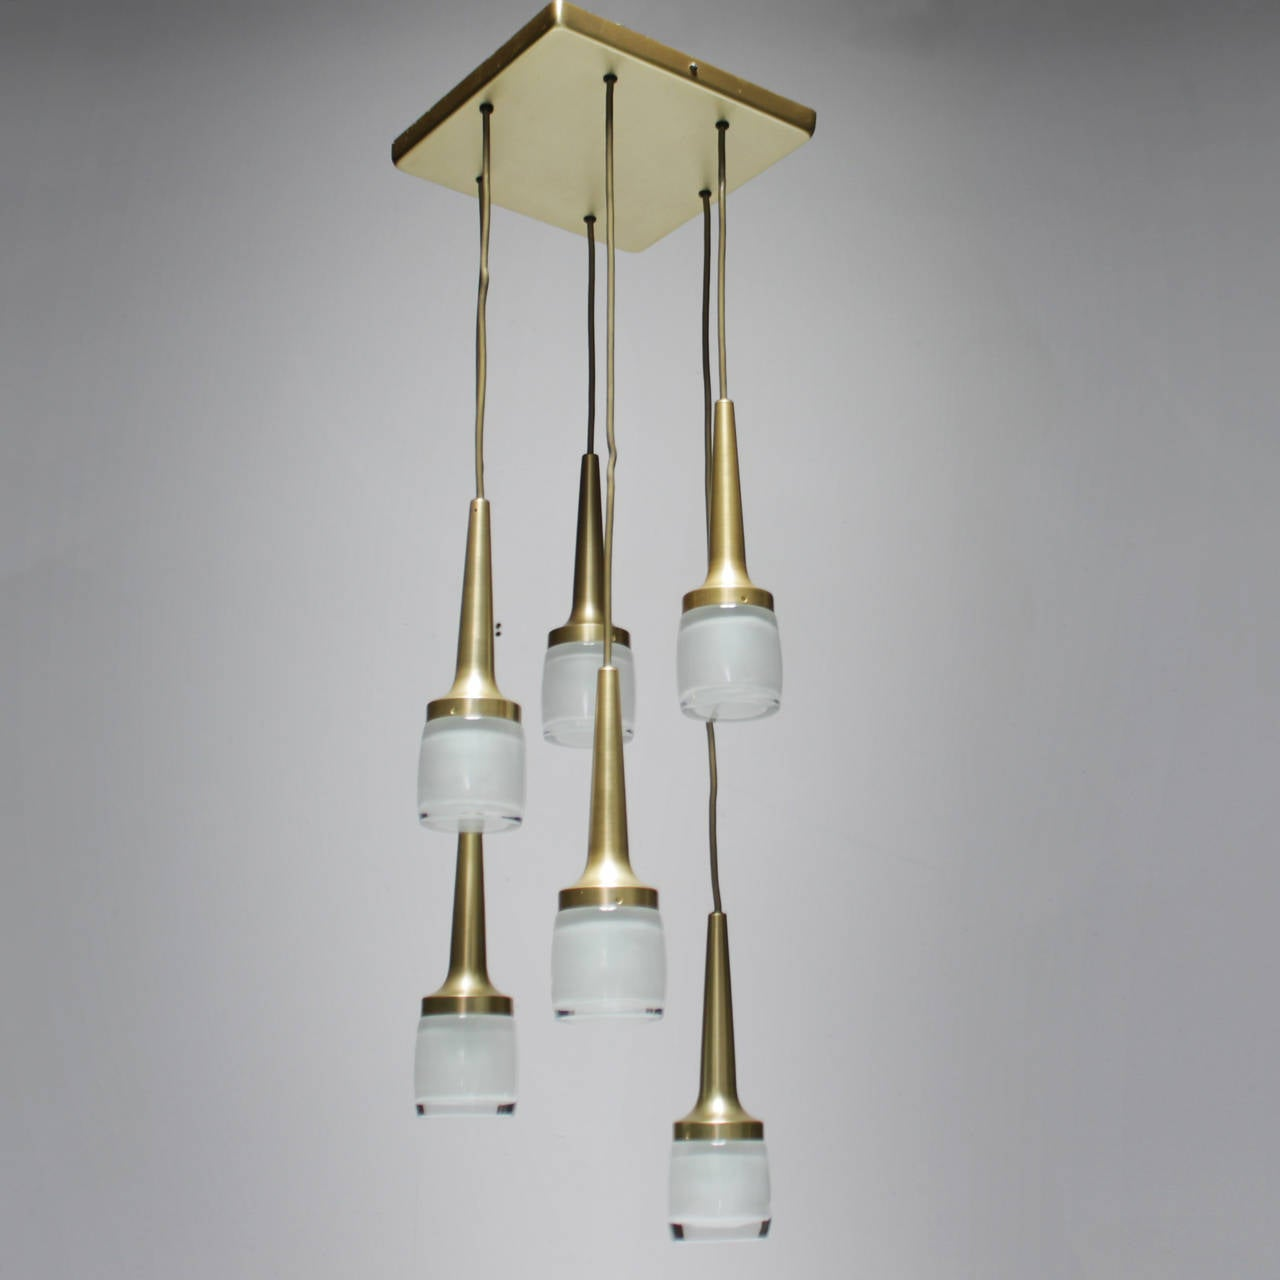 Pendant Lighting Germany : Fixture with six staff pendants germany for sale at stdibs